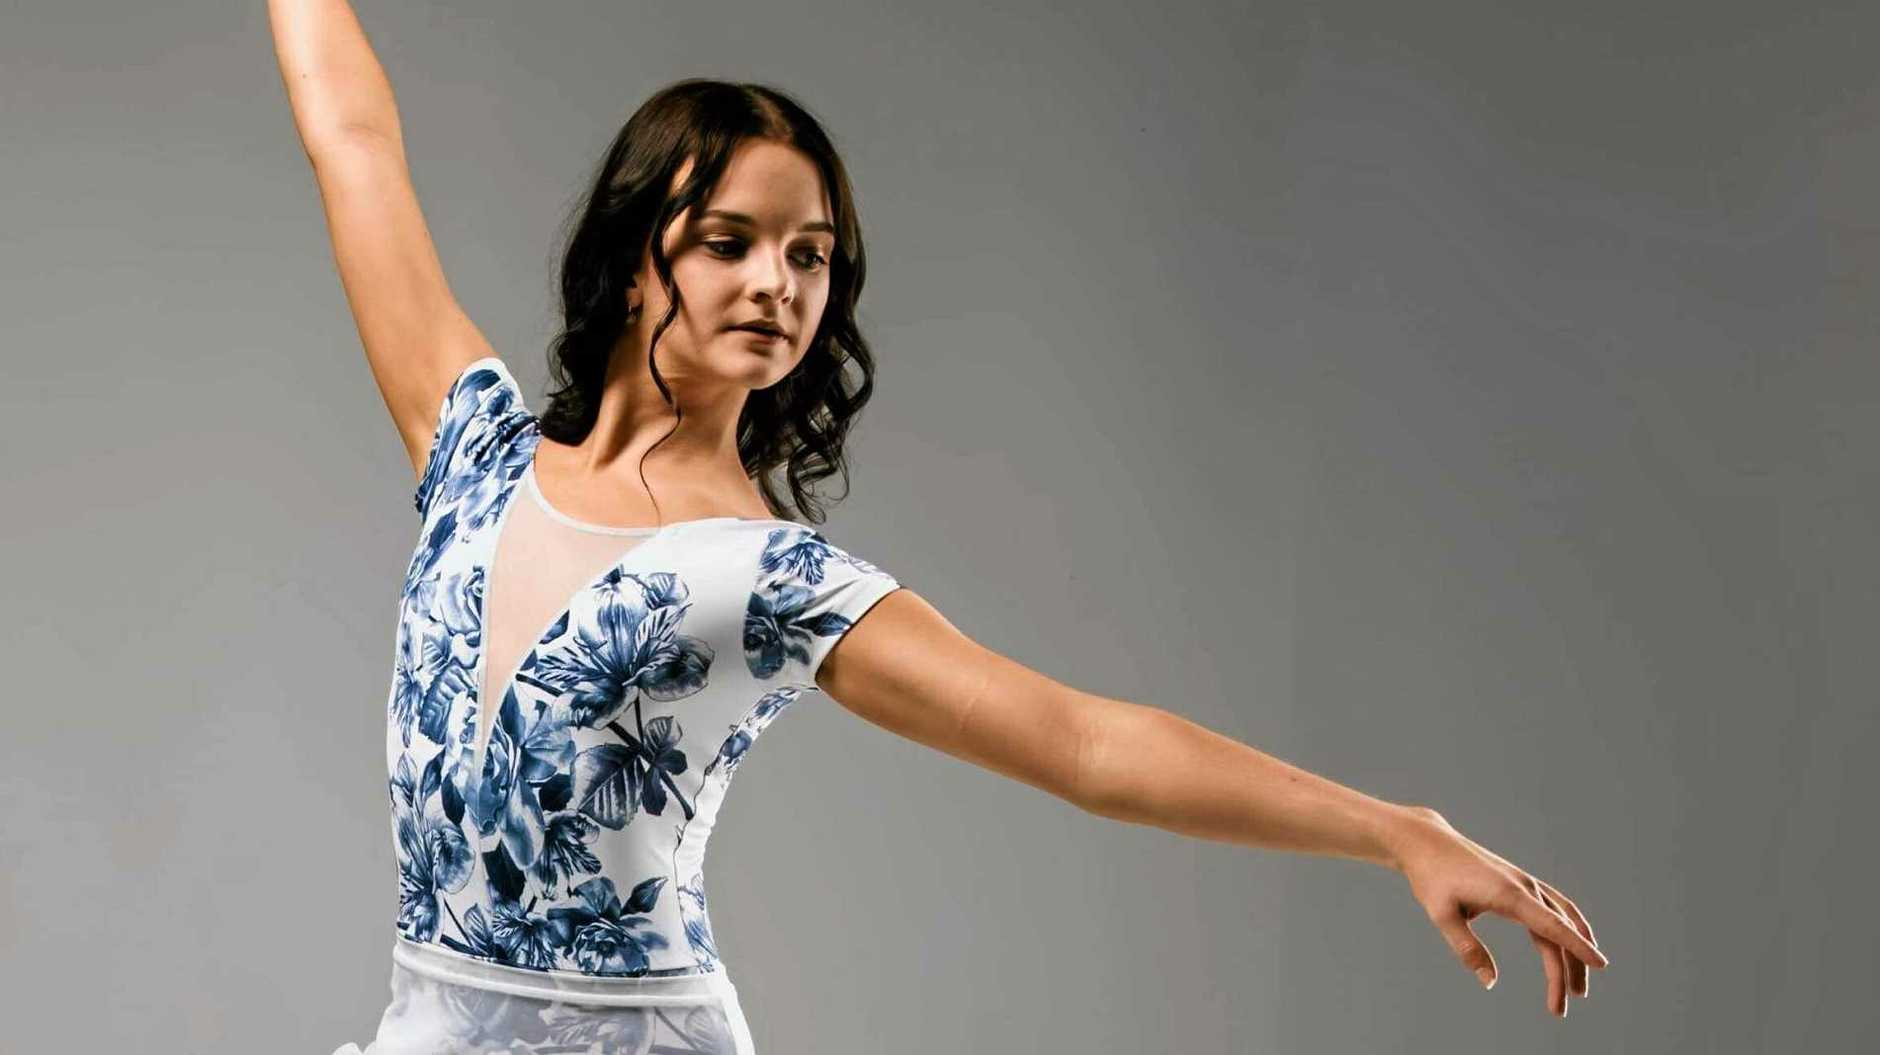 ON-POINTE: Georgia Baxter, 17, has been offered a position at prestigious dance company, Royal New Zealand Ballet after years of dedication in the industry.